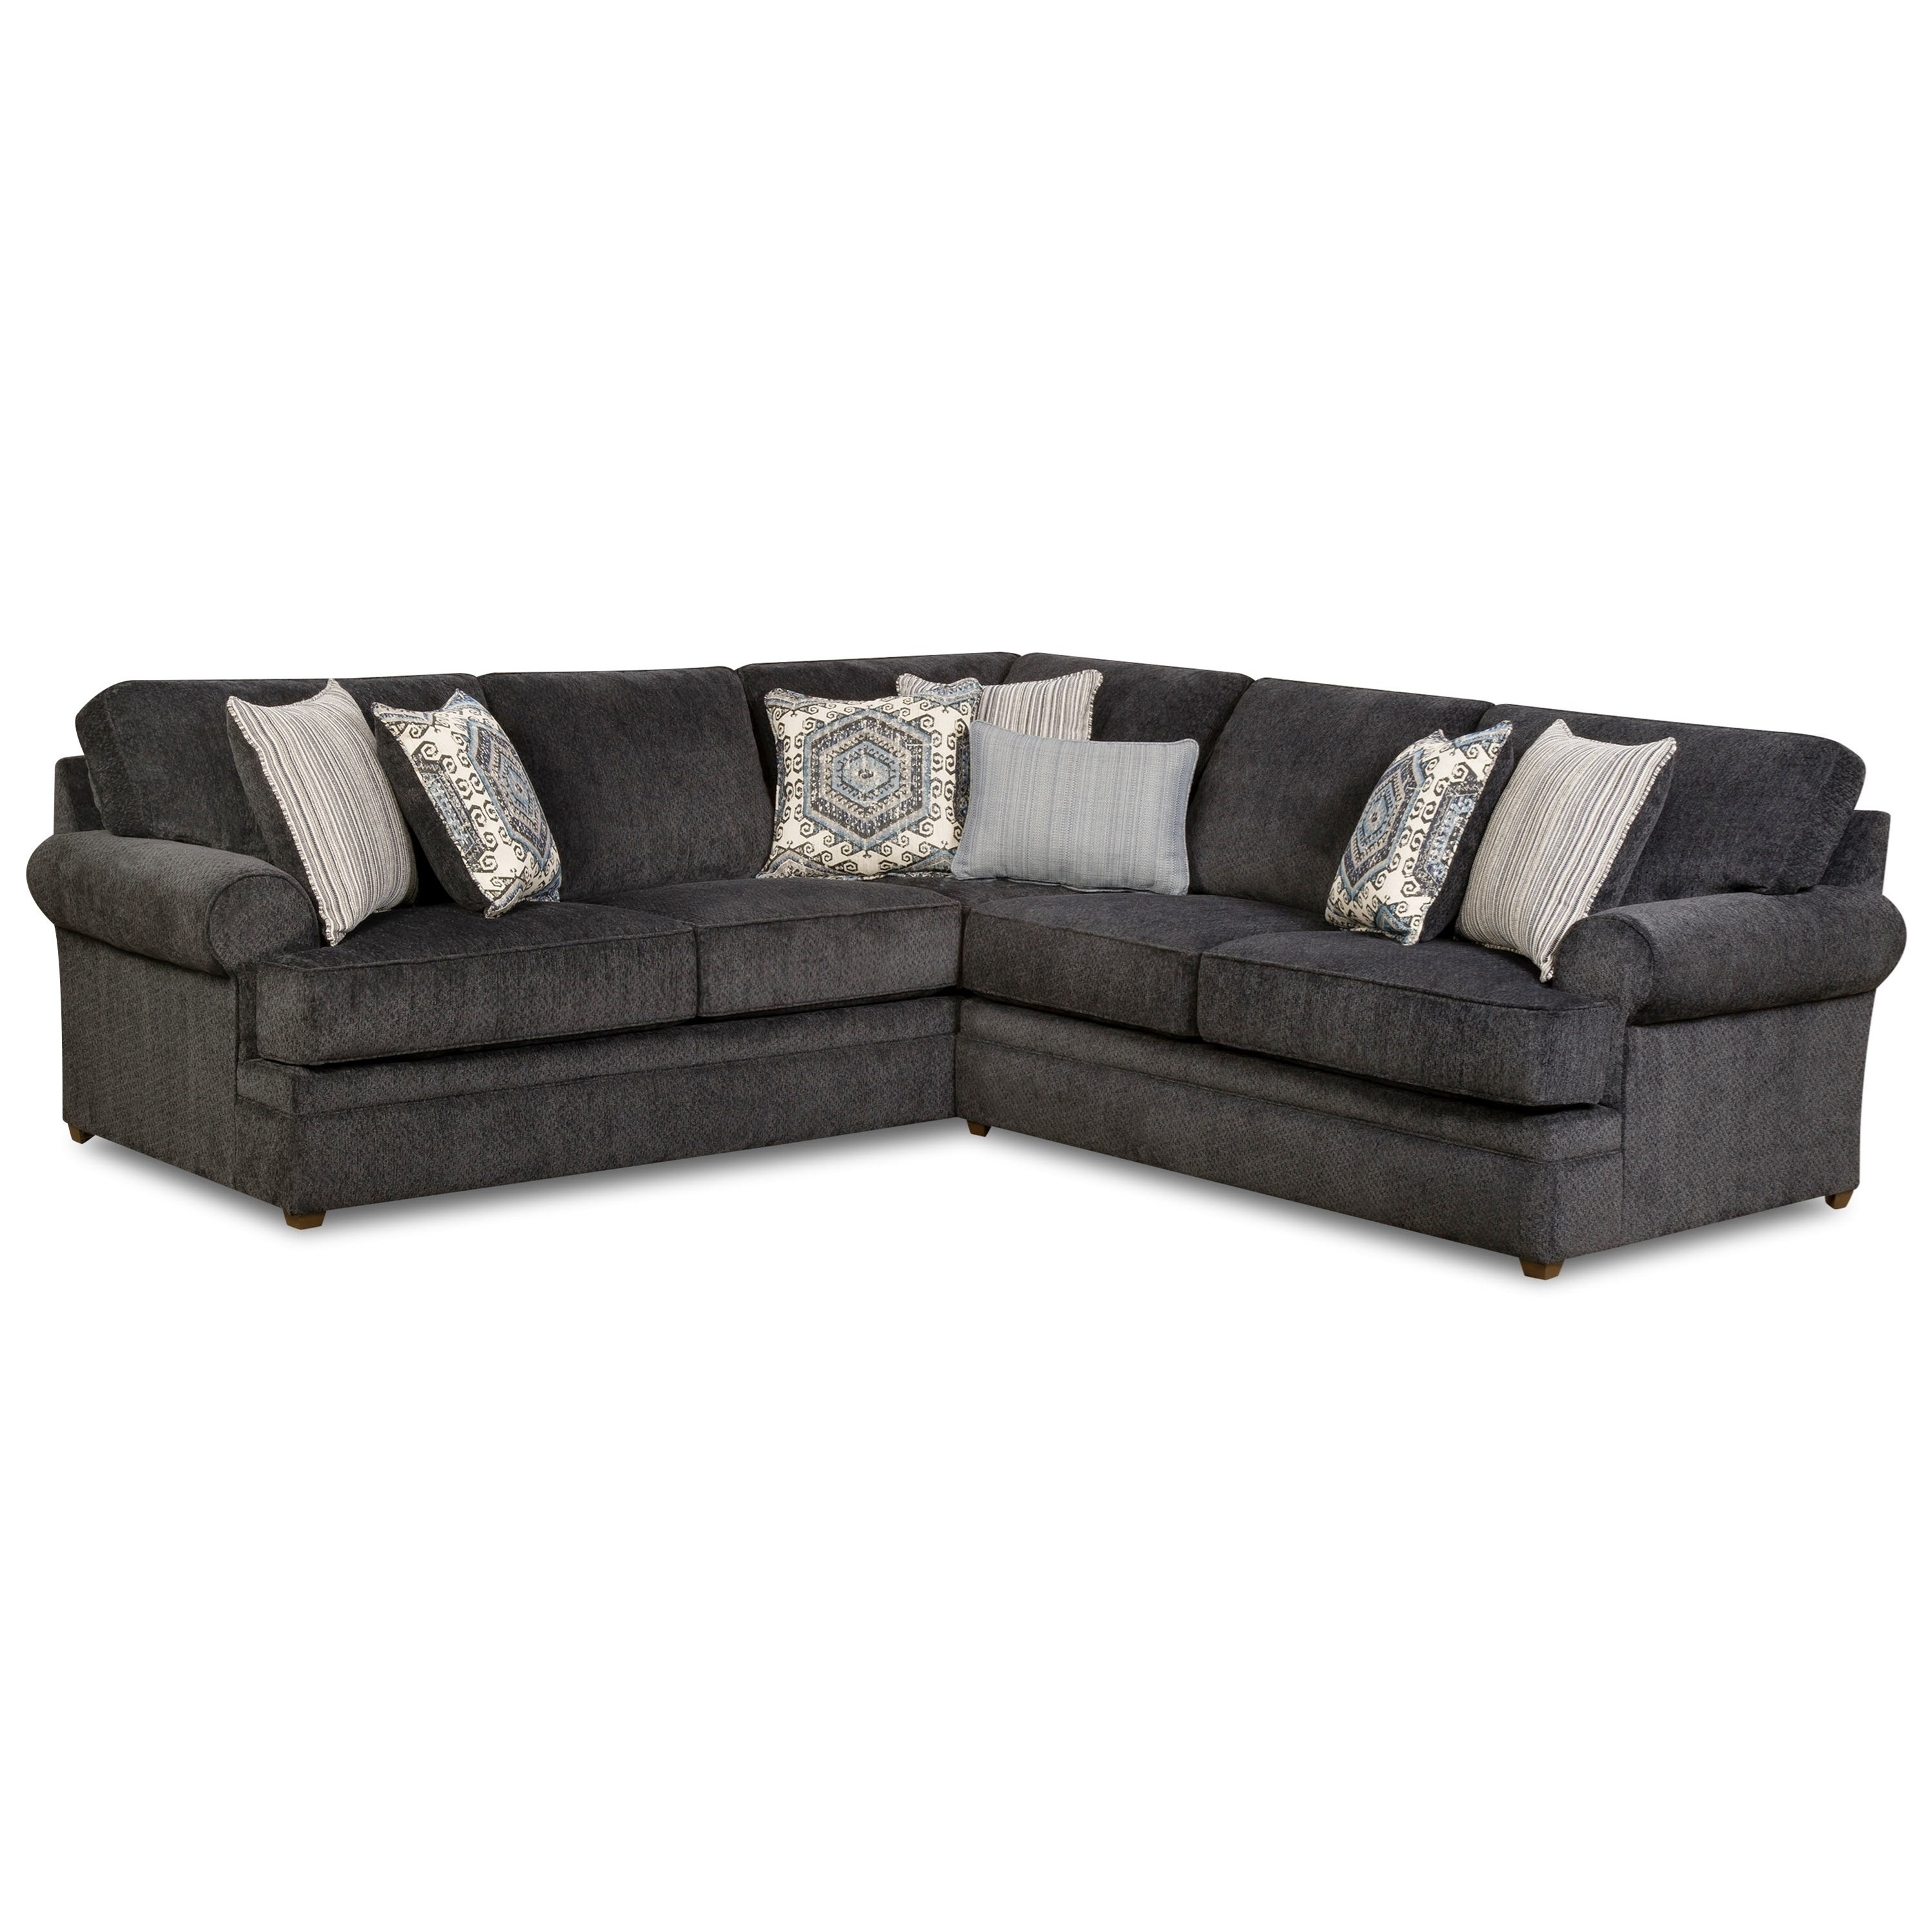 Simmons Upholstery 8530 Br Transitional Sectional Sofa With Rolled pertaining to Sectional Sofas at Birmingham Al (Image 15 of 15)